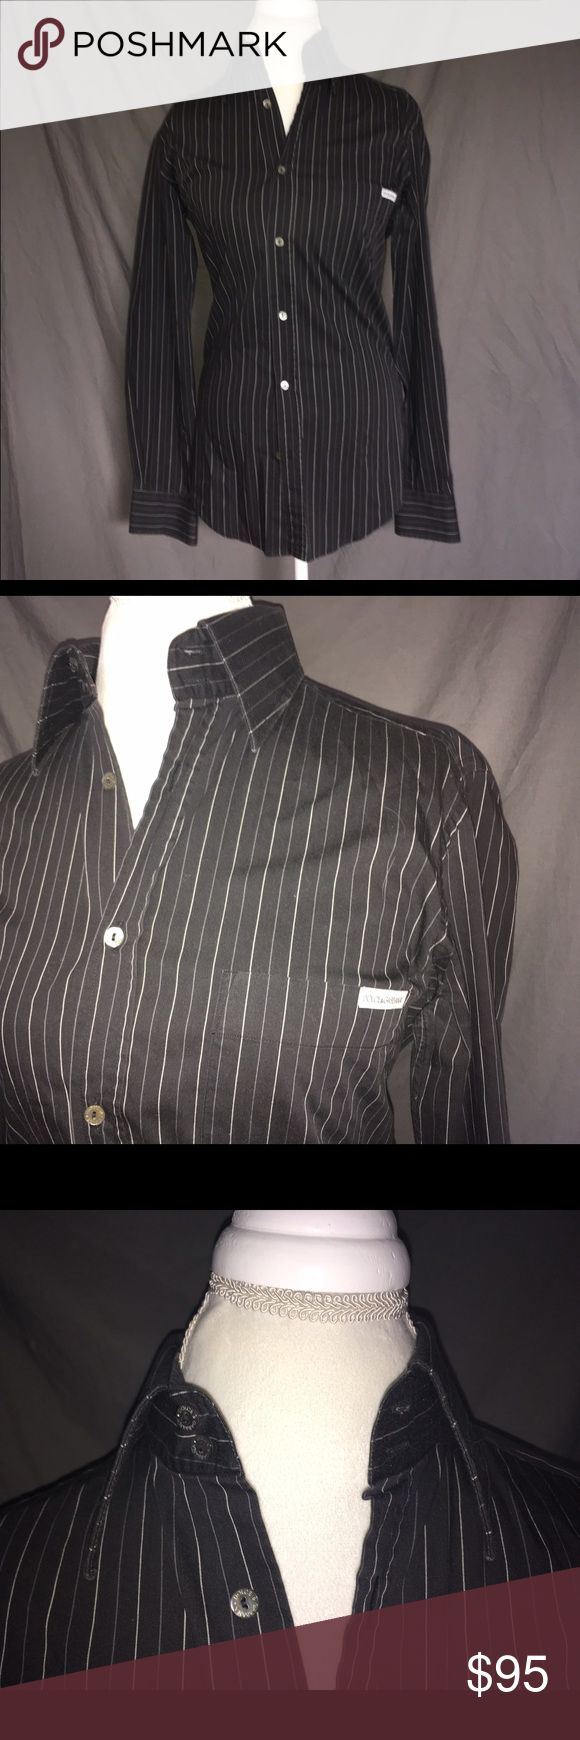 Dolce & Gabbana Button Down Black Dolce & Gabbana button down shirt. The Dolce & Gabbana logo is on the left side of the chest and the buttons. This is a mans shirt but my mannequin is a size 10 and fits beautifully. What a great piece to add to your collection!! Made in Italy. Dolce & Gabbana Shirts Dress Shirts